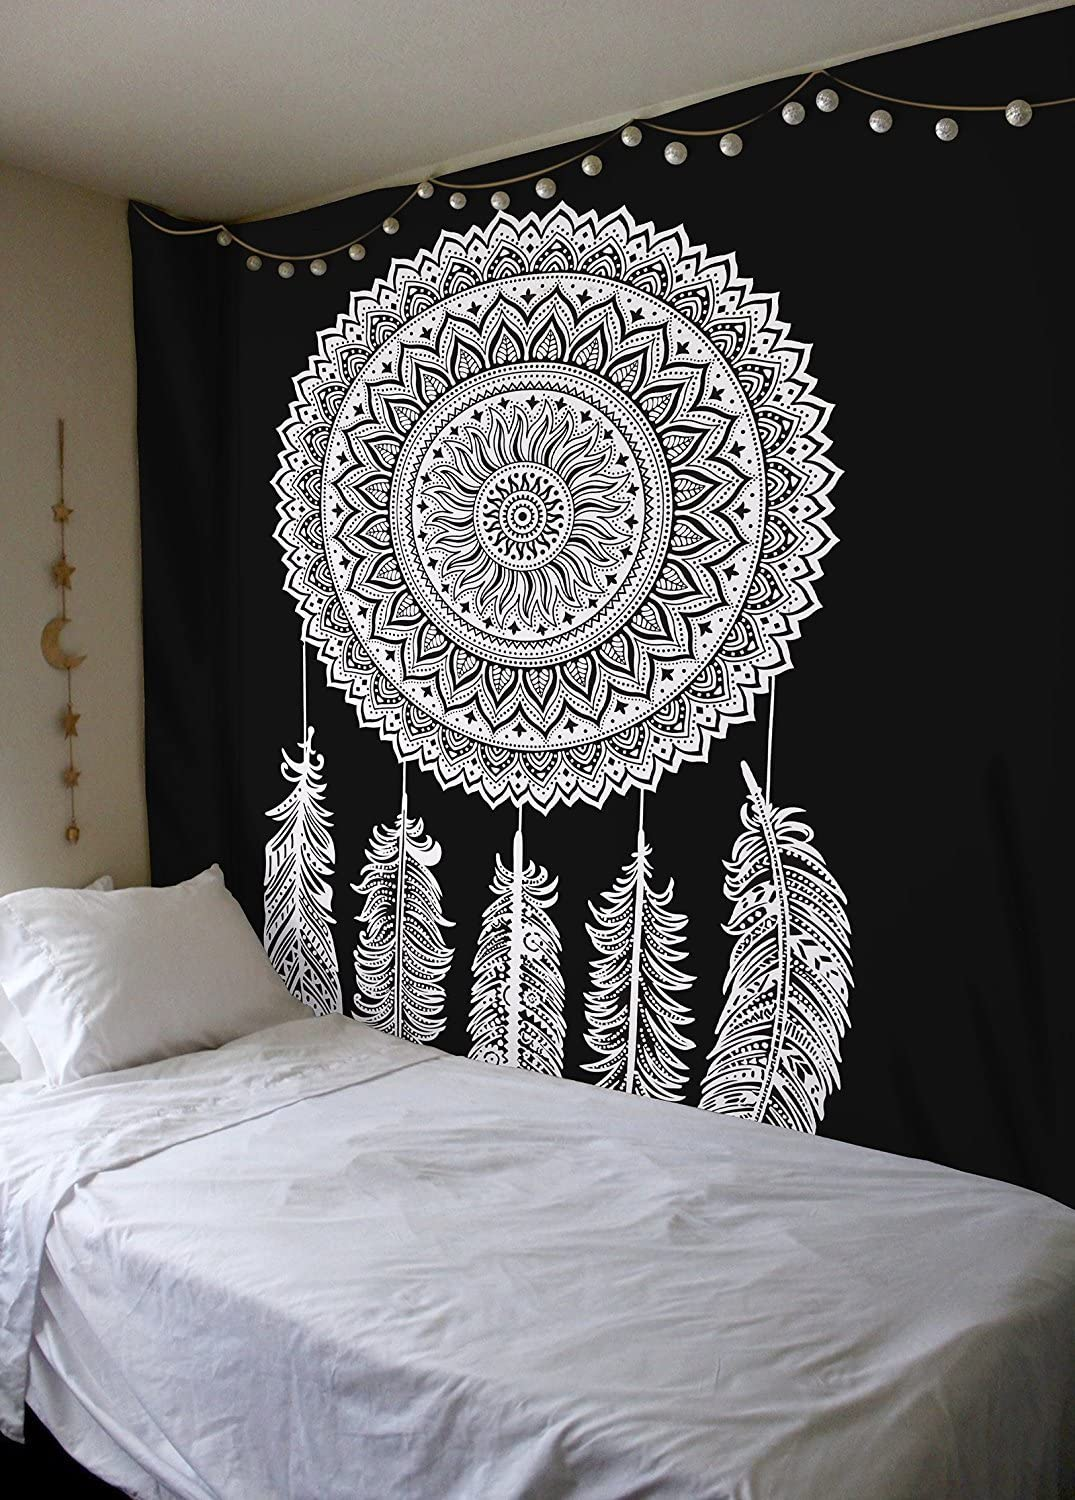 Royal Furnish Black-White Dream Cather Tapestry Boho Home Decor Blanket for Bedroom,Living Room,Dorm Psychedelic Bedding Aesthetic Indian Dorm Décor (Black-Dream Cather)